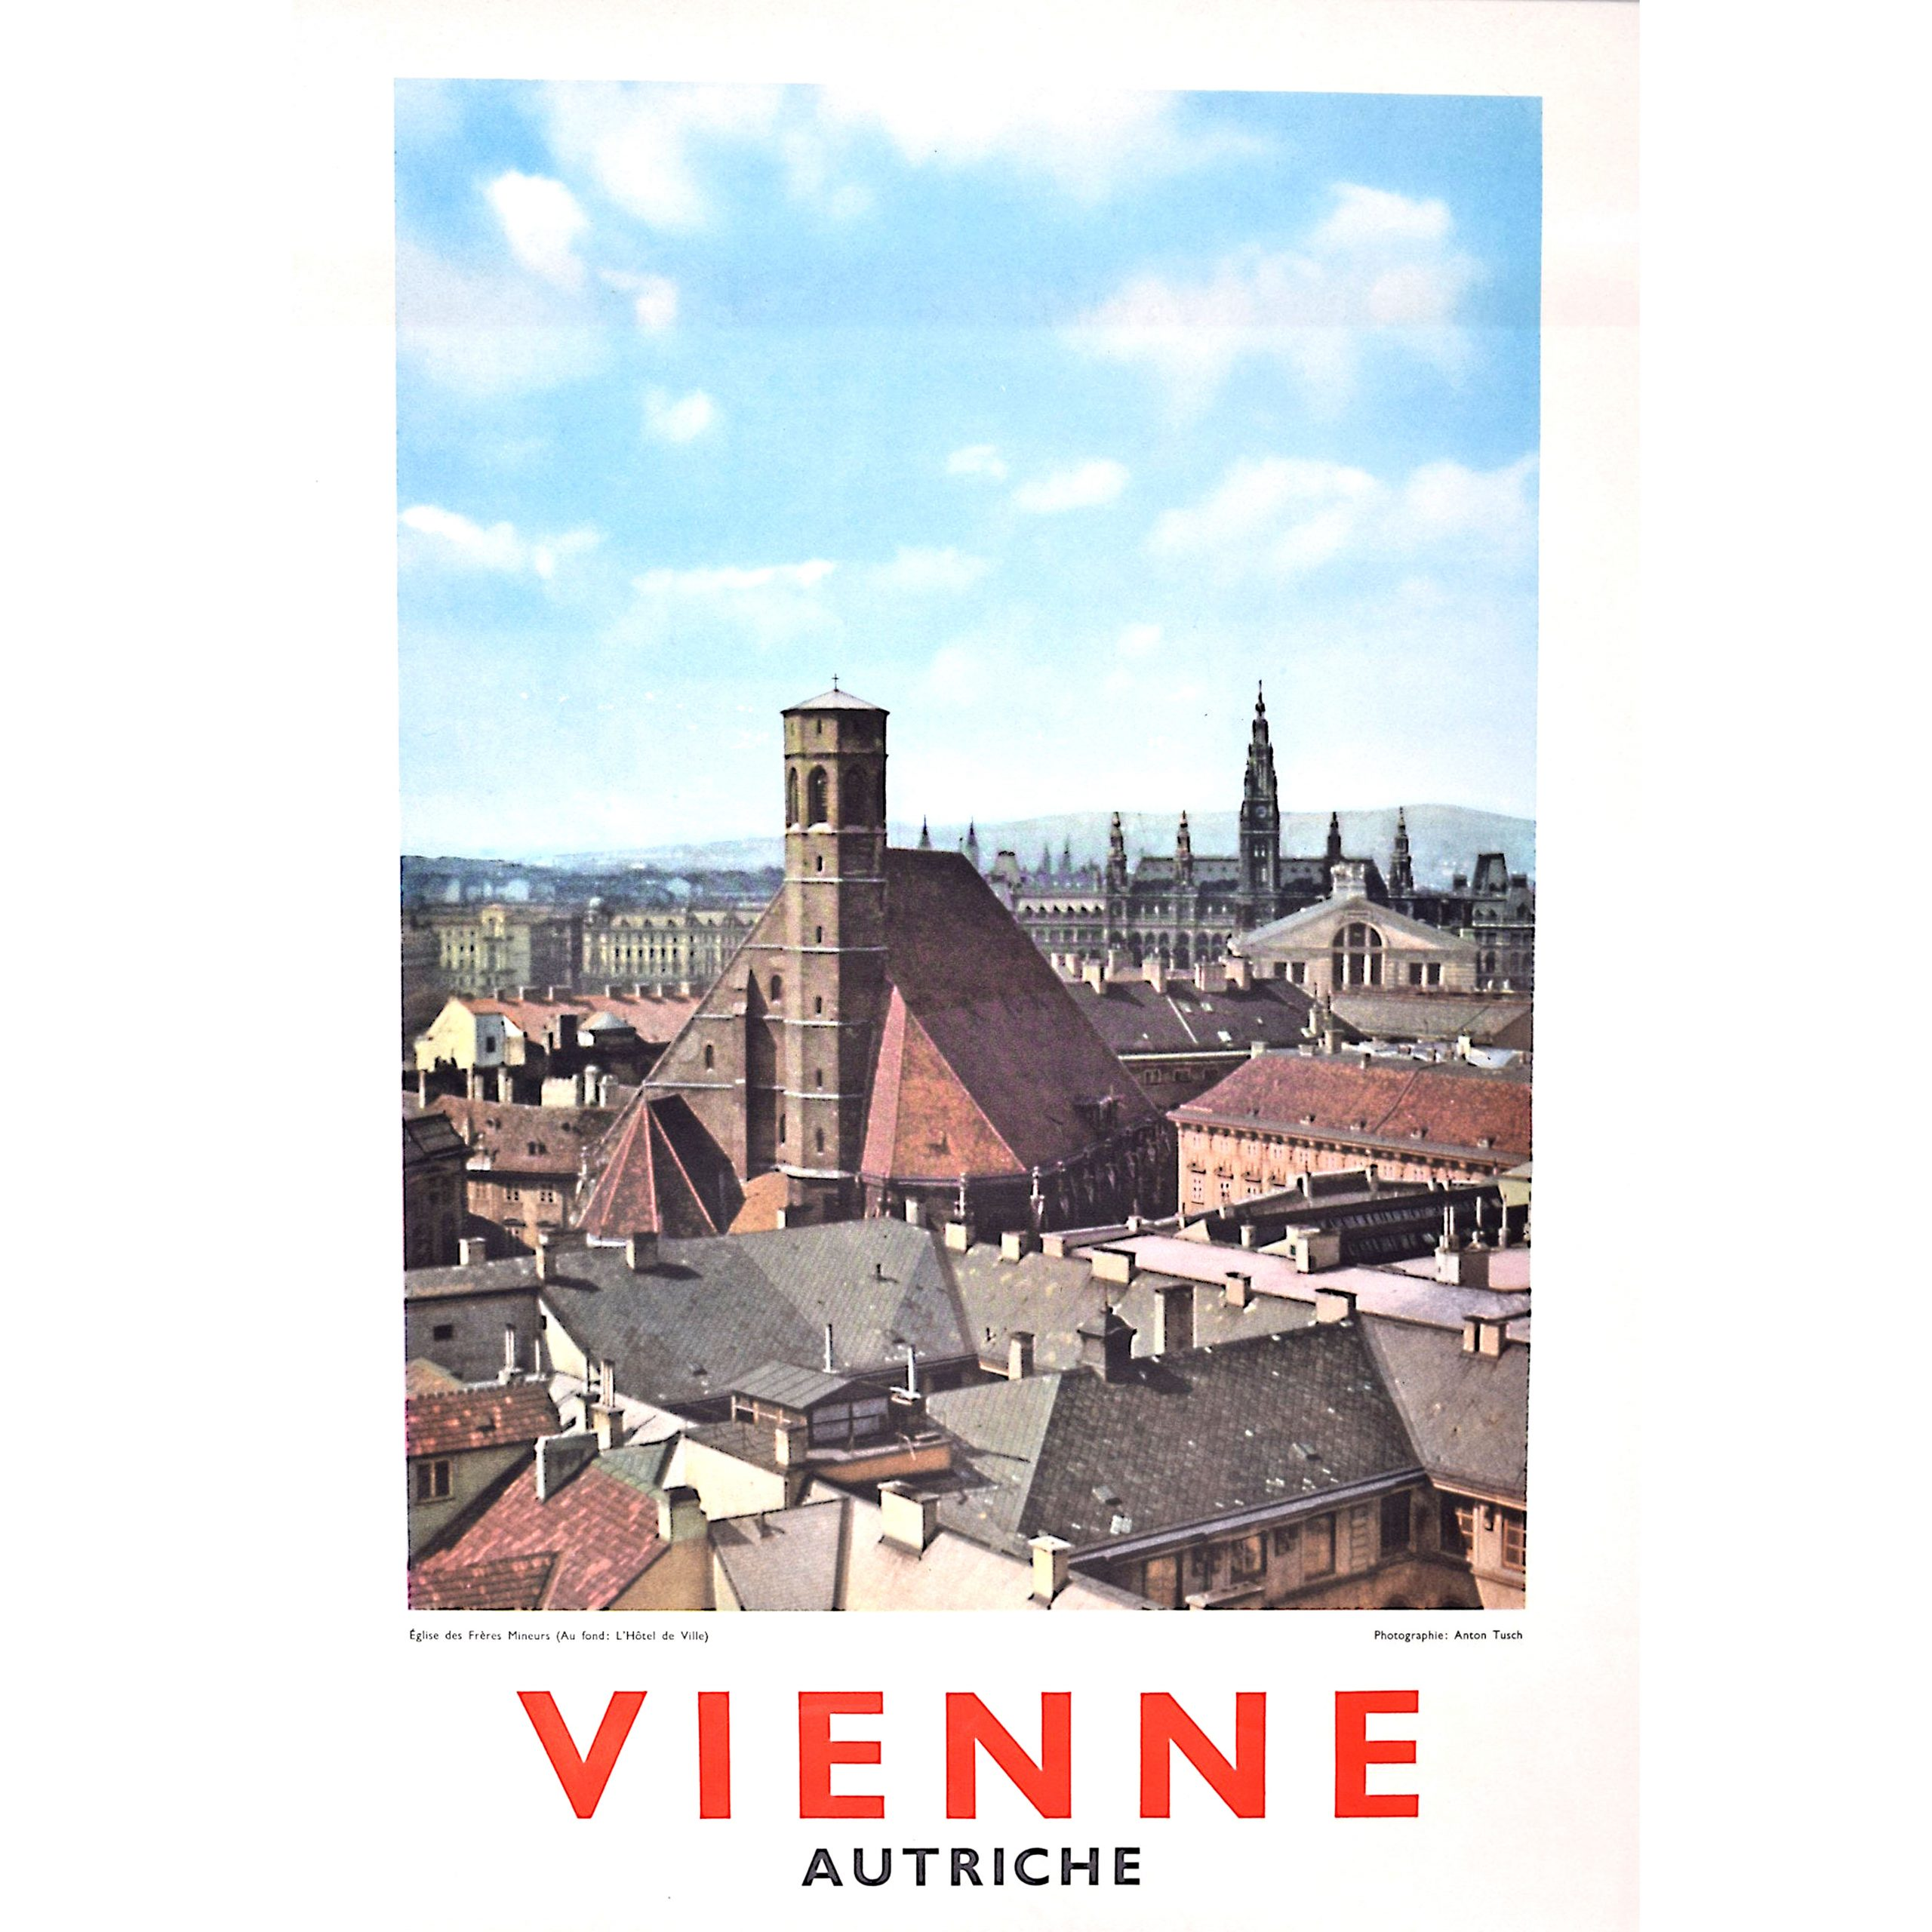 Herndl Original Austria Photographic Travel Poster Vienna Musee des Beaux Arts